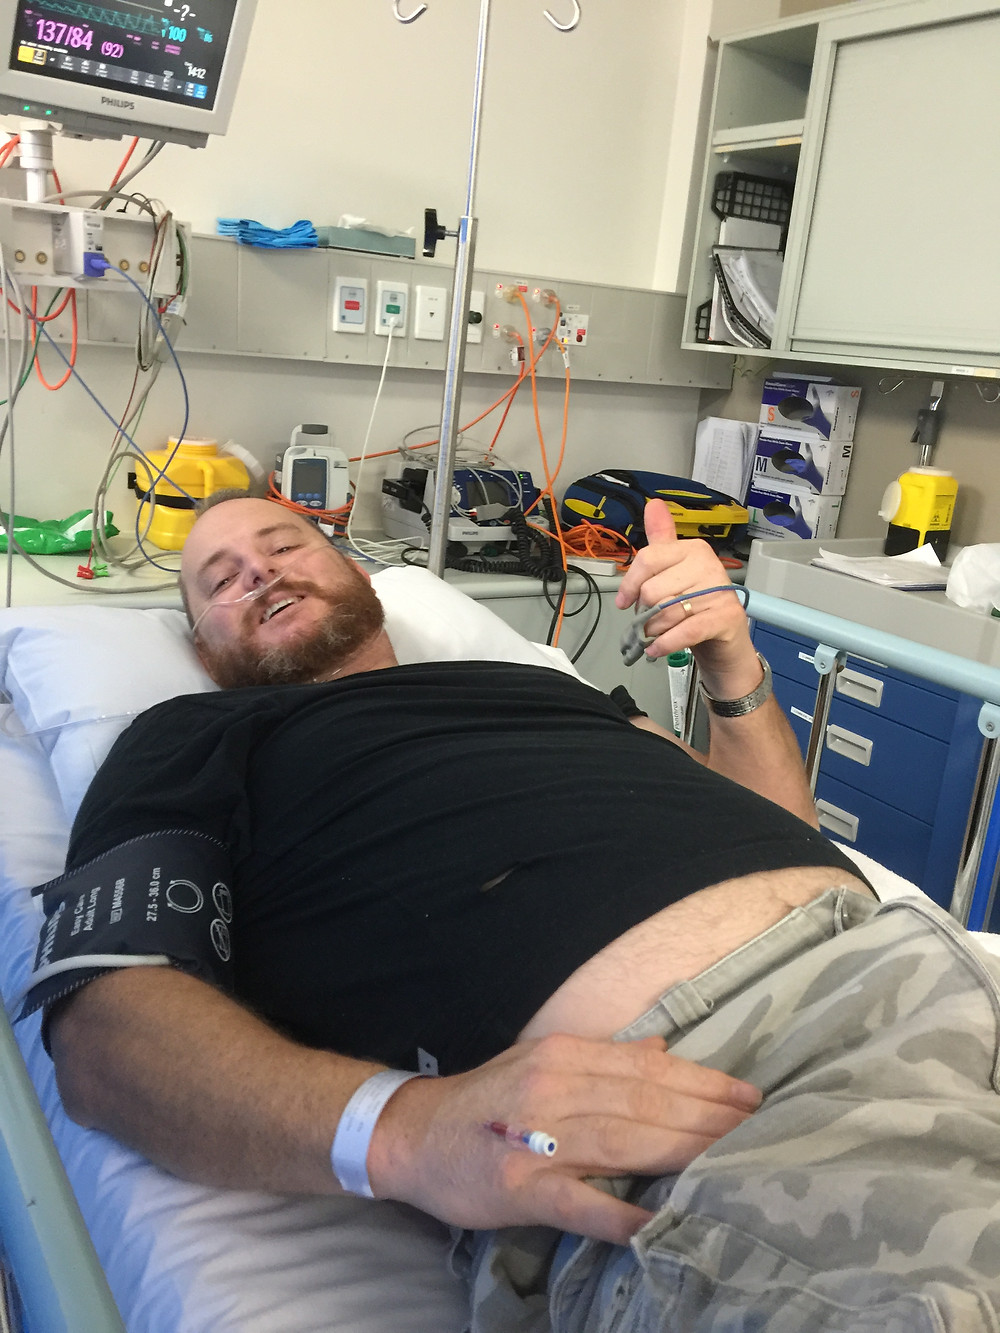 Matt in hospital with another ruptured disc prior to beginning rehabilitation with the Me-Mover